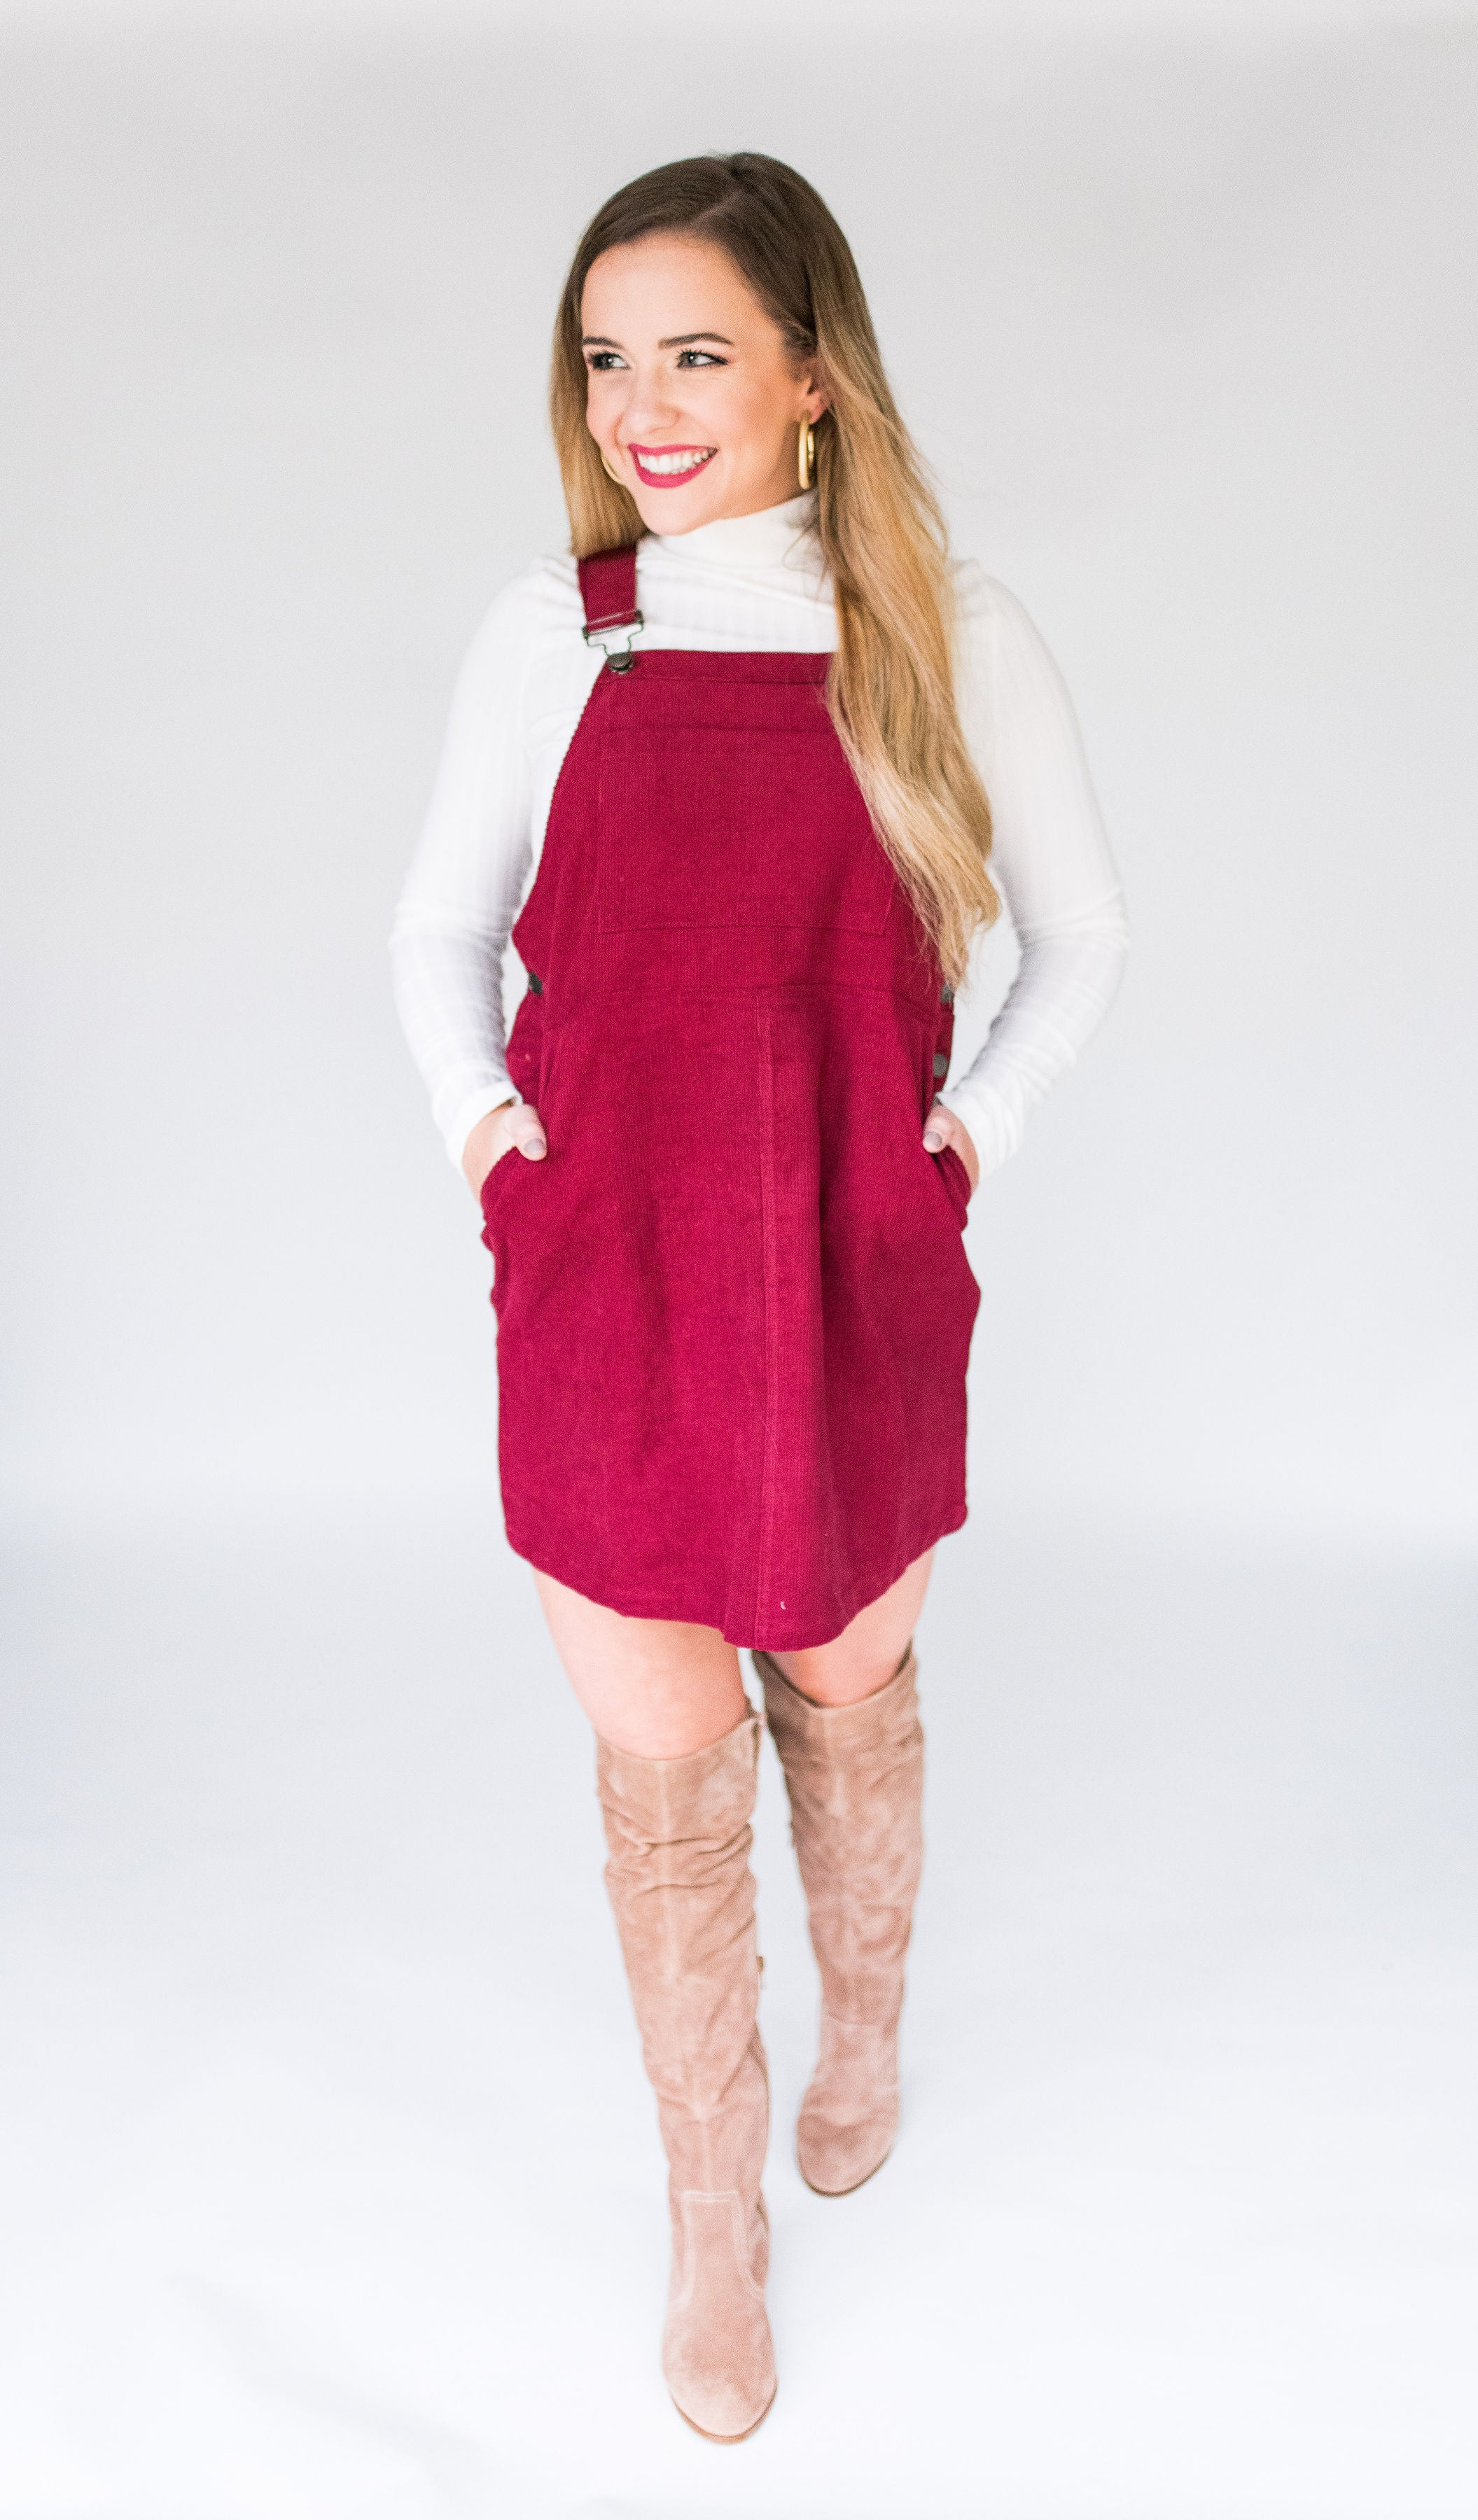 Olive You A Lot Corduroy Overall Dress with Front Pocket:  Wine